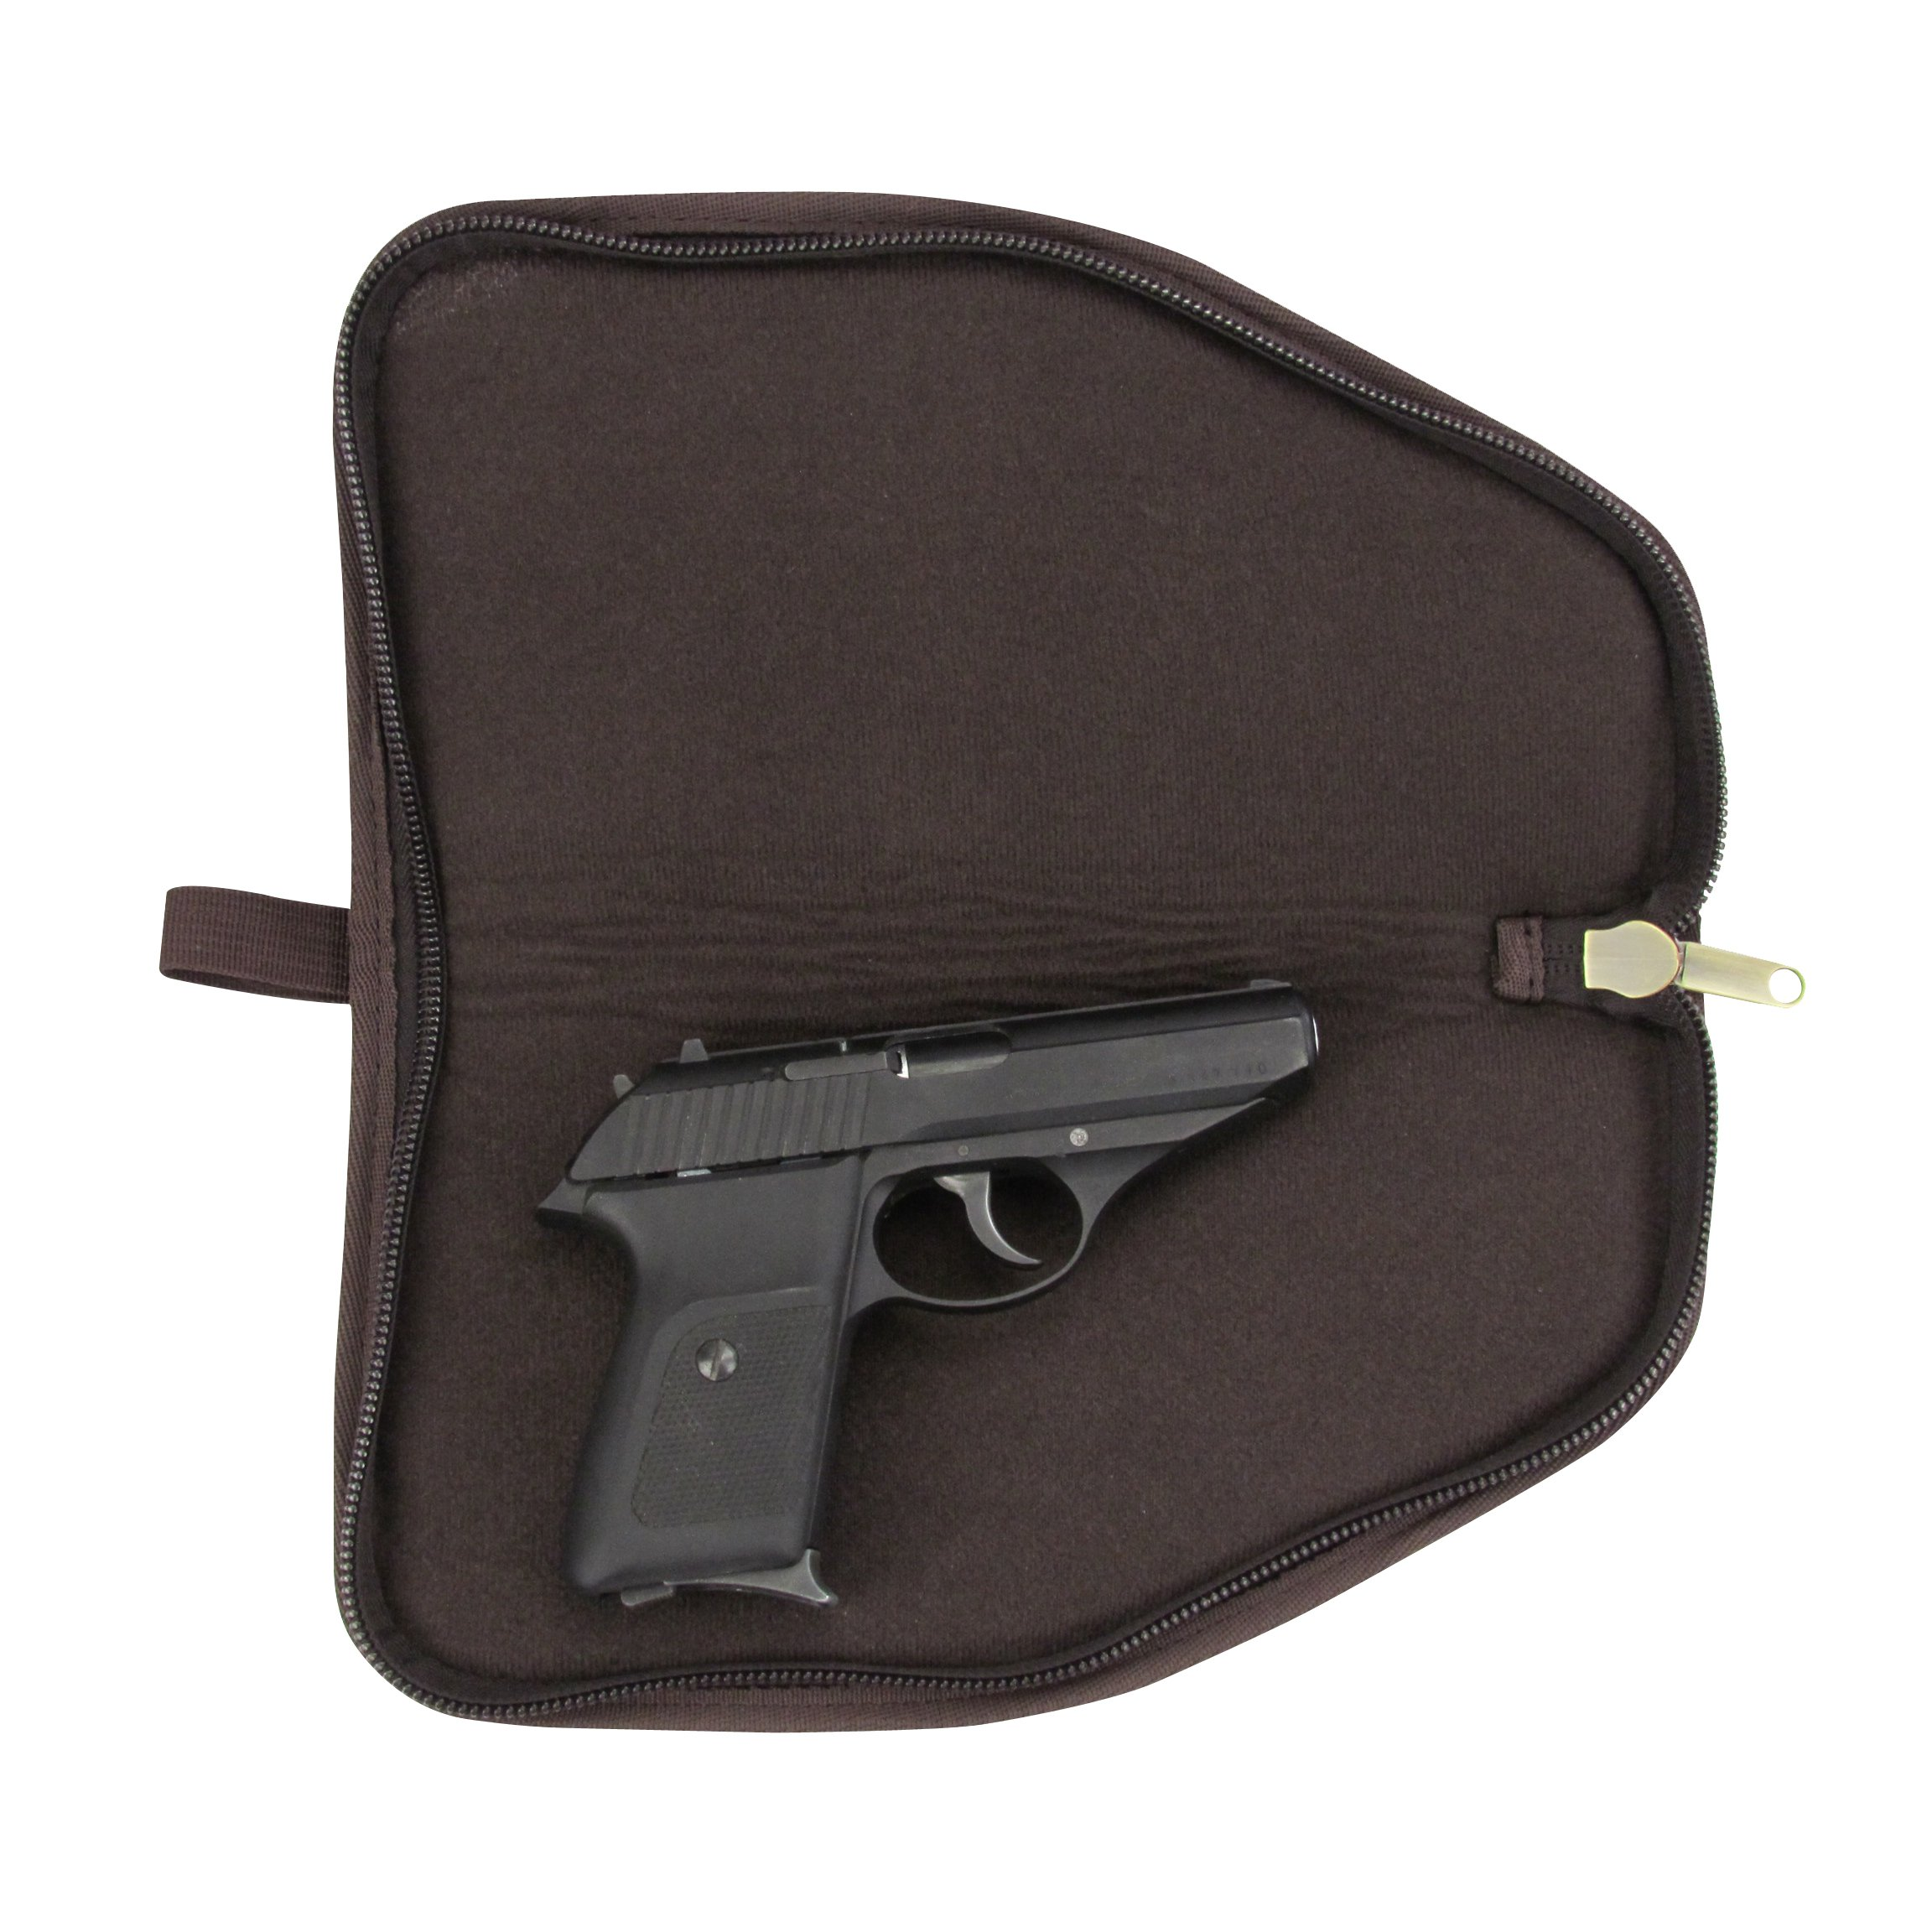 TOURBON Canvas Hand Gun Pouch Pistol Rug with Gun Accessories Pocket by TOURBON (Image #5)